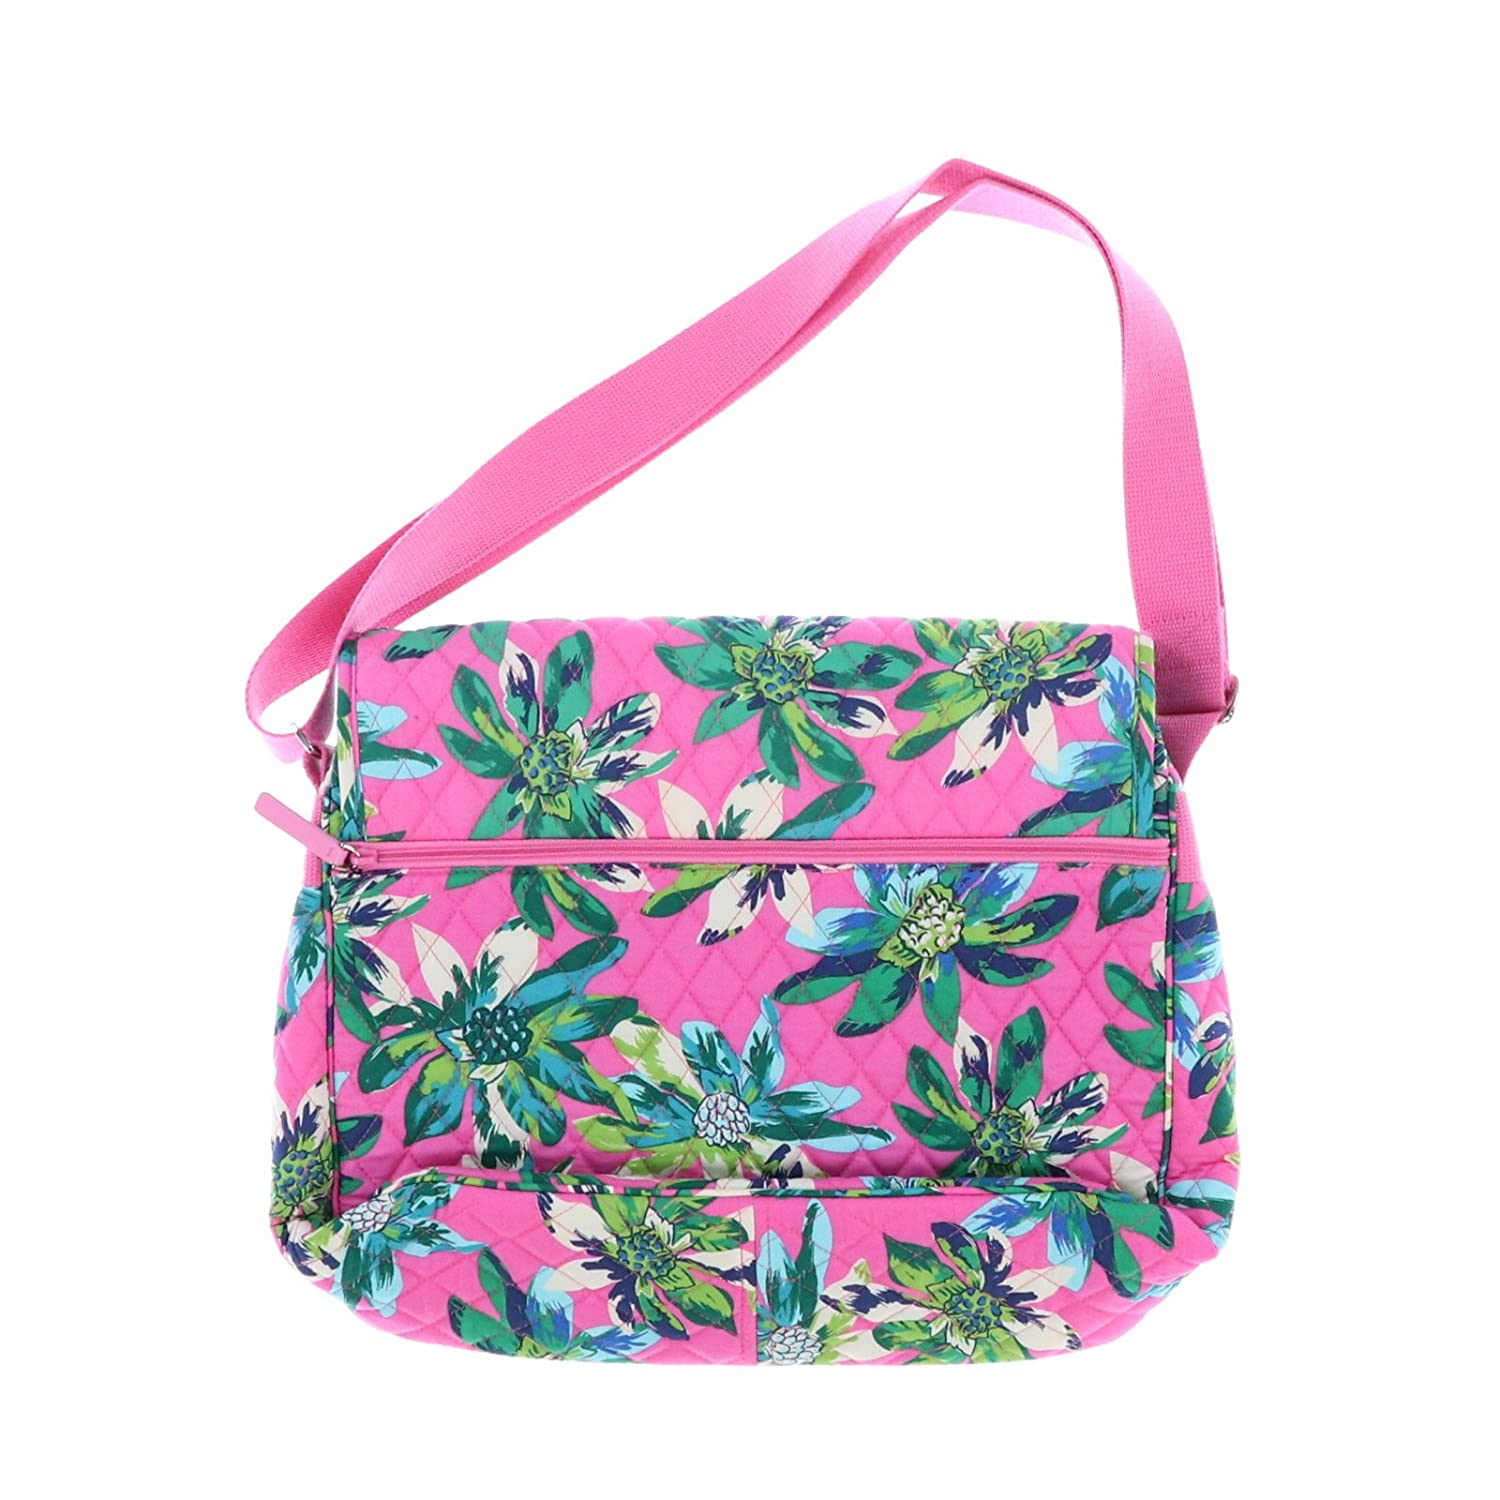 ce3cb85f0fe Amazon.com  Vera Bradley Messenger Bag (Blueberry Blooms)  Computers    Accessories